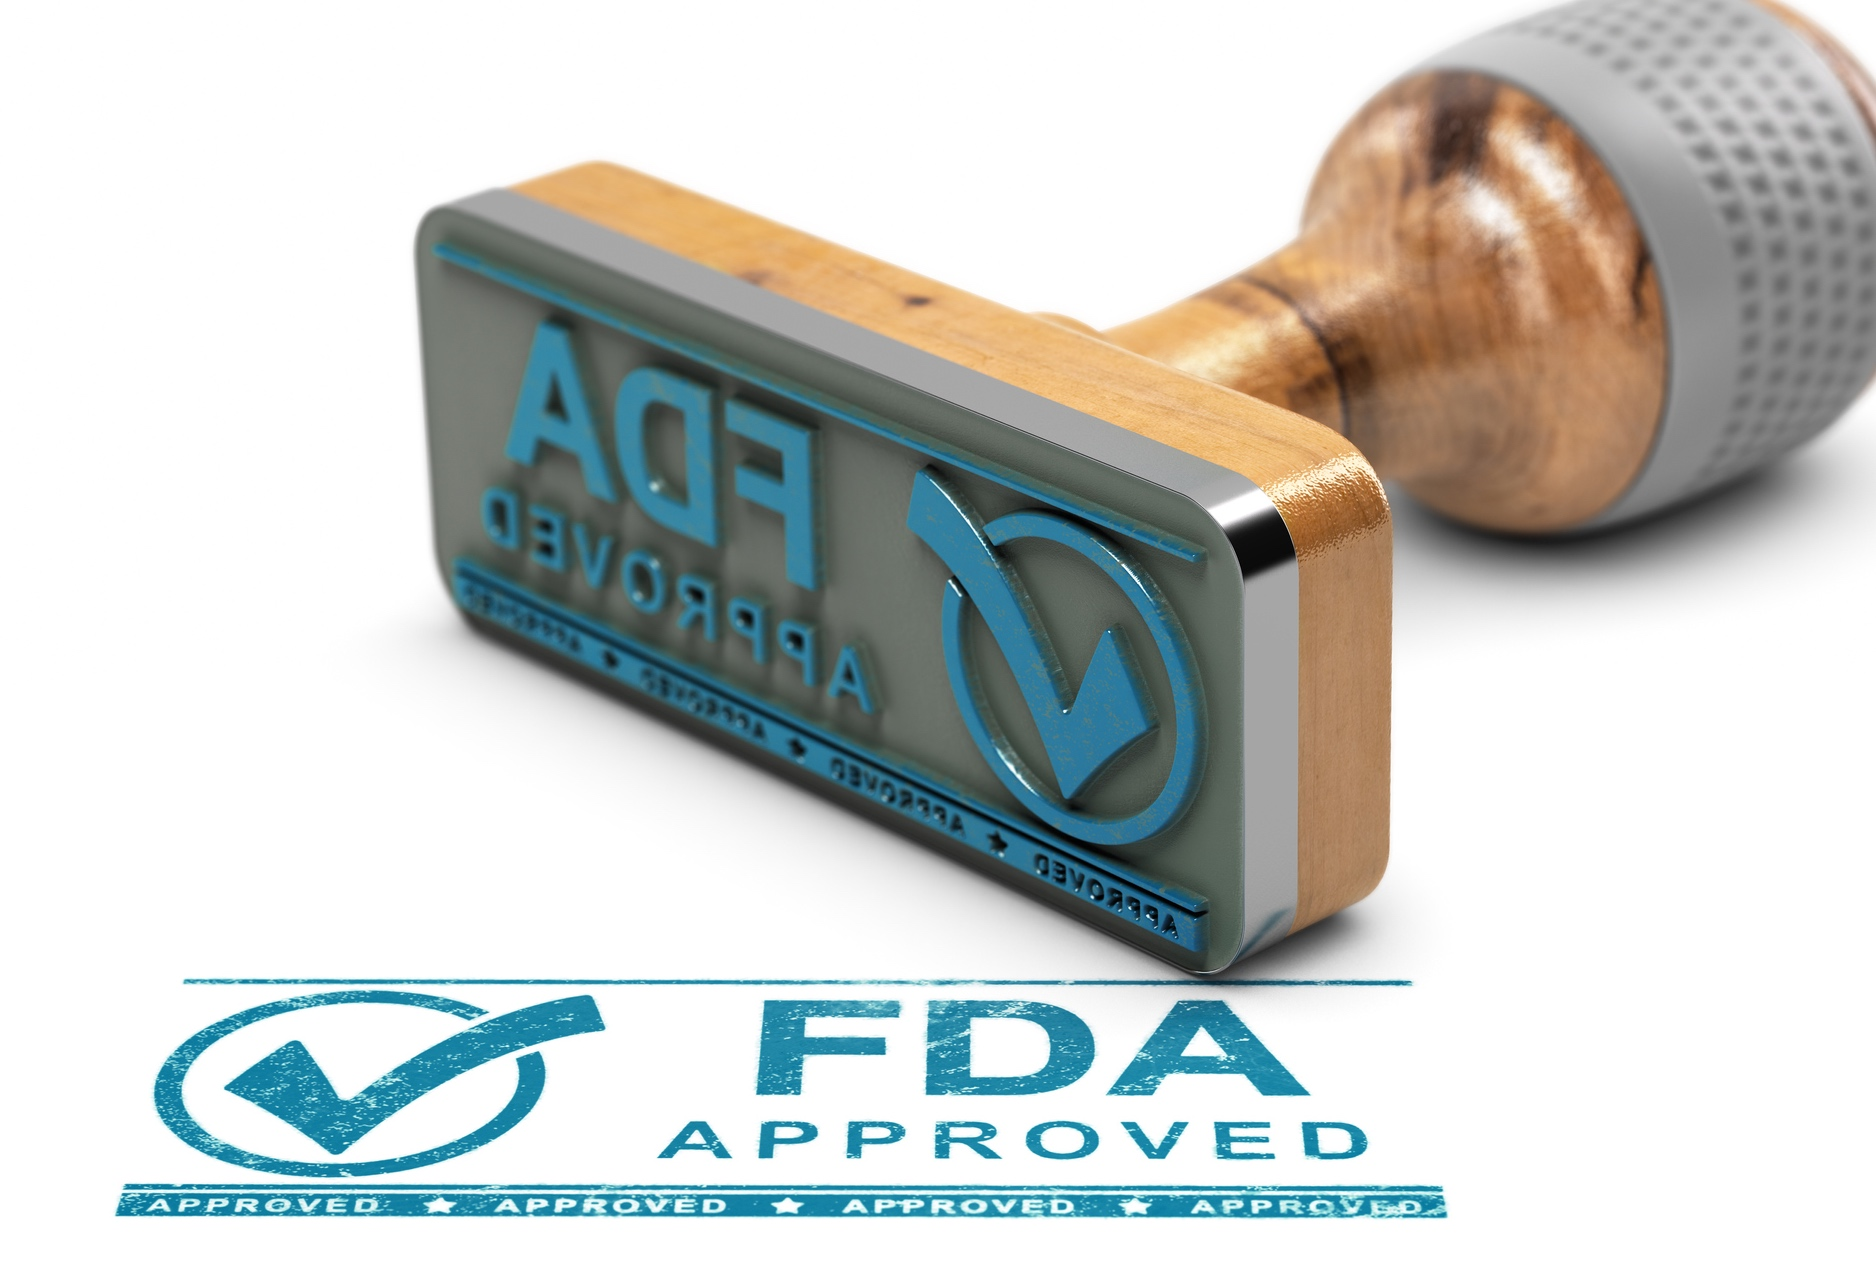 FDA approval stamp stock photo